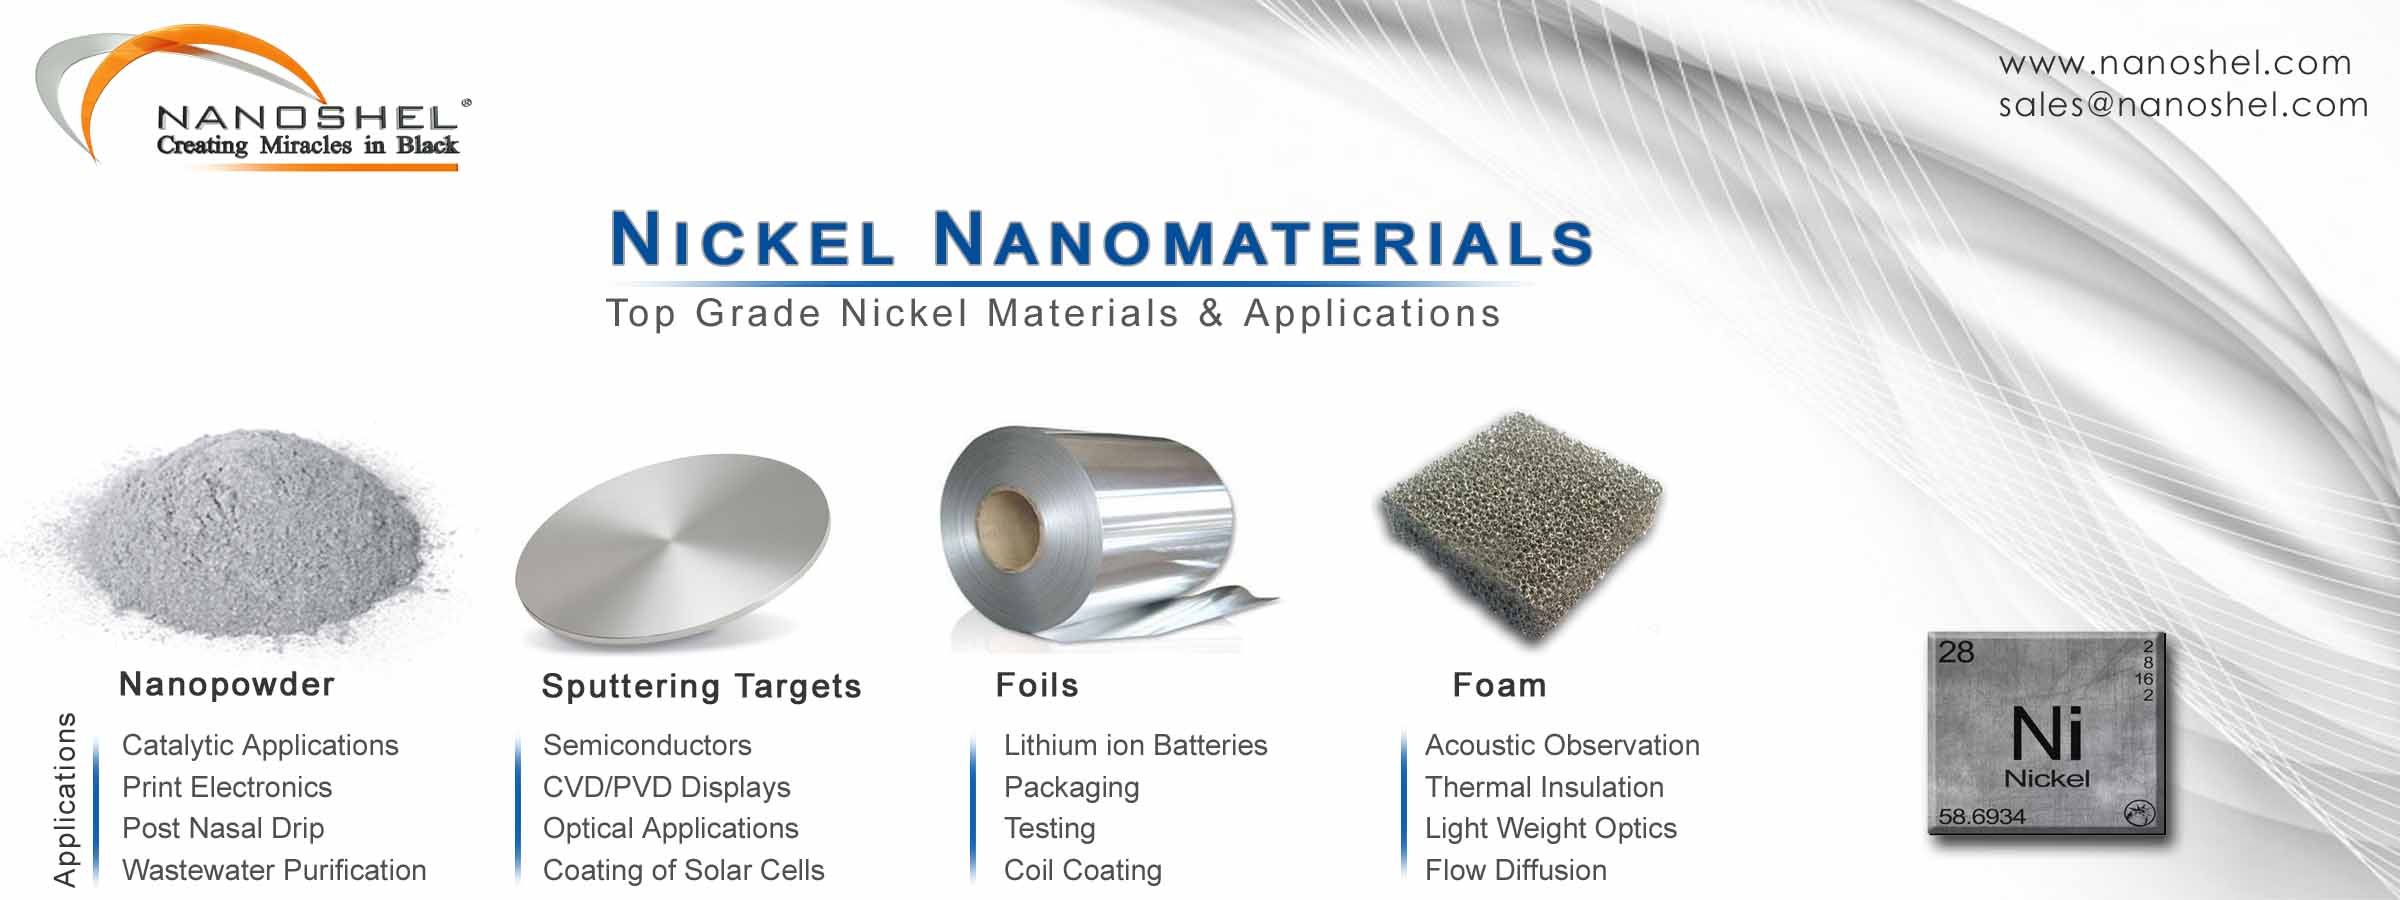 Carbon Coated Nickel Nanoparticles